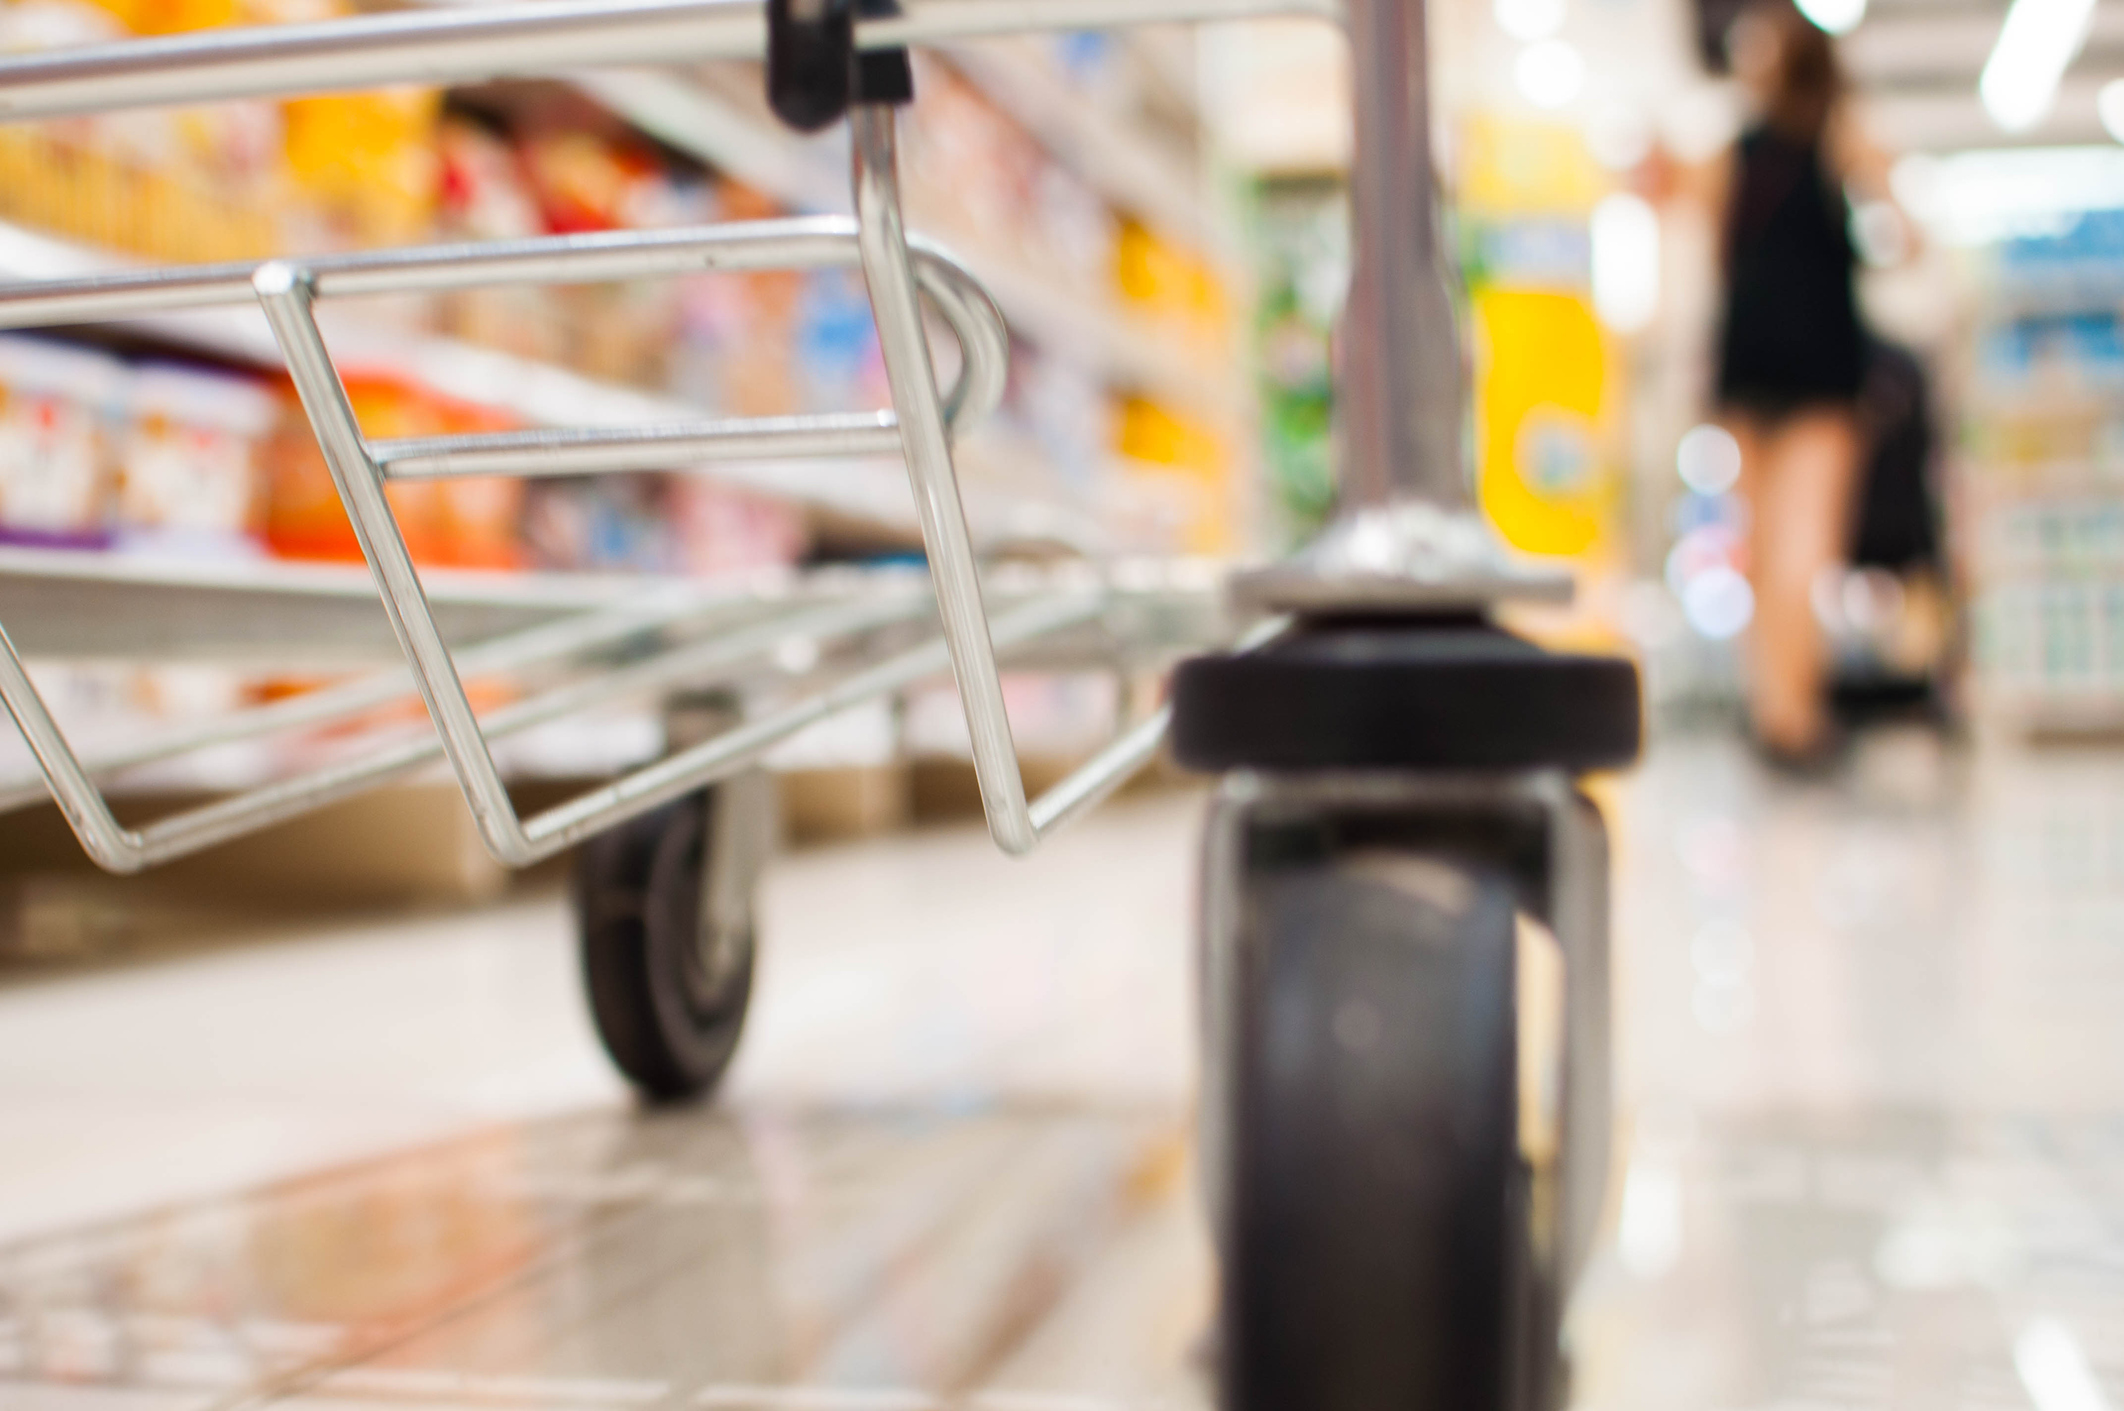 A low angle view of a shopping cart in the grocery store (Getty Images)